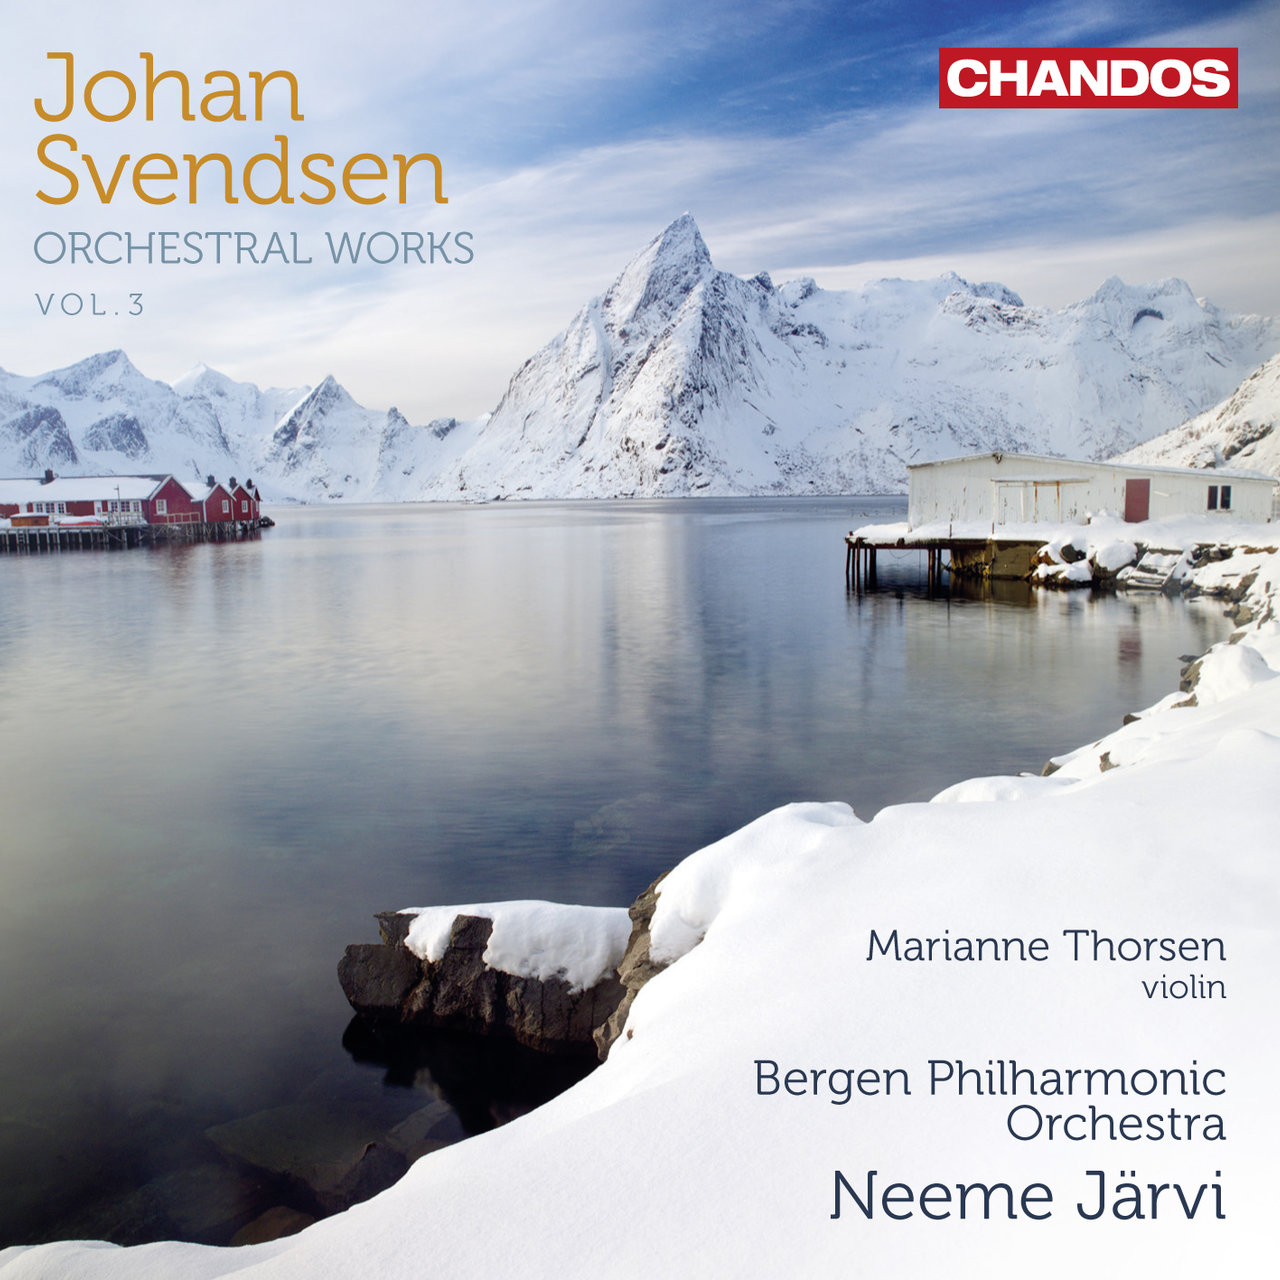 Svendsen: Orchestral Works, Vol. 3